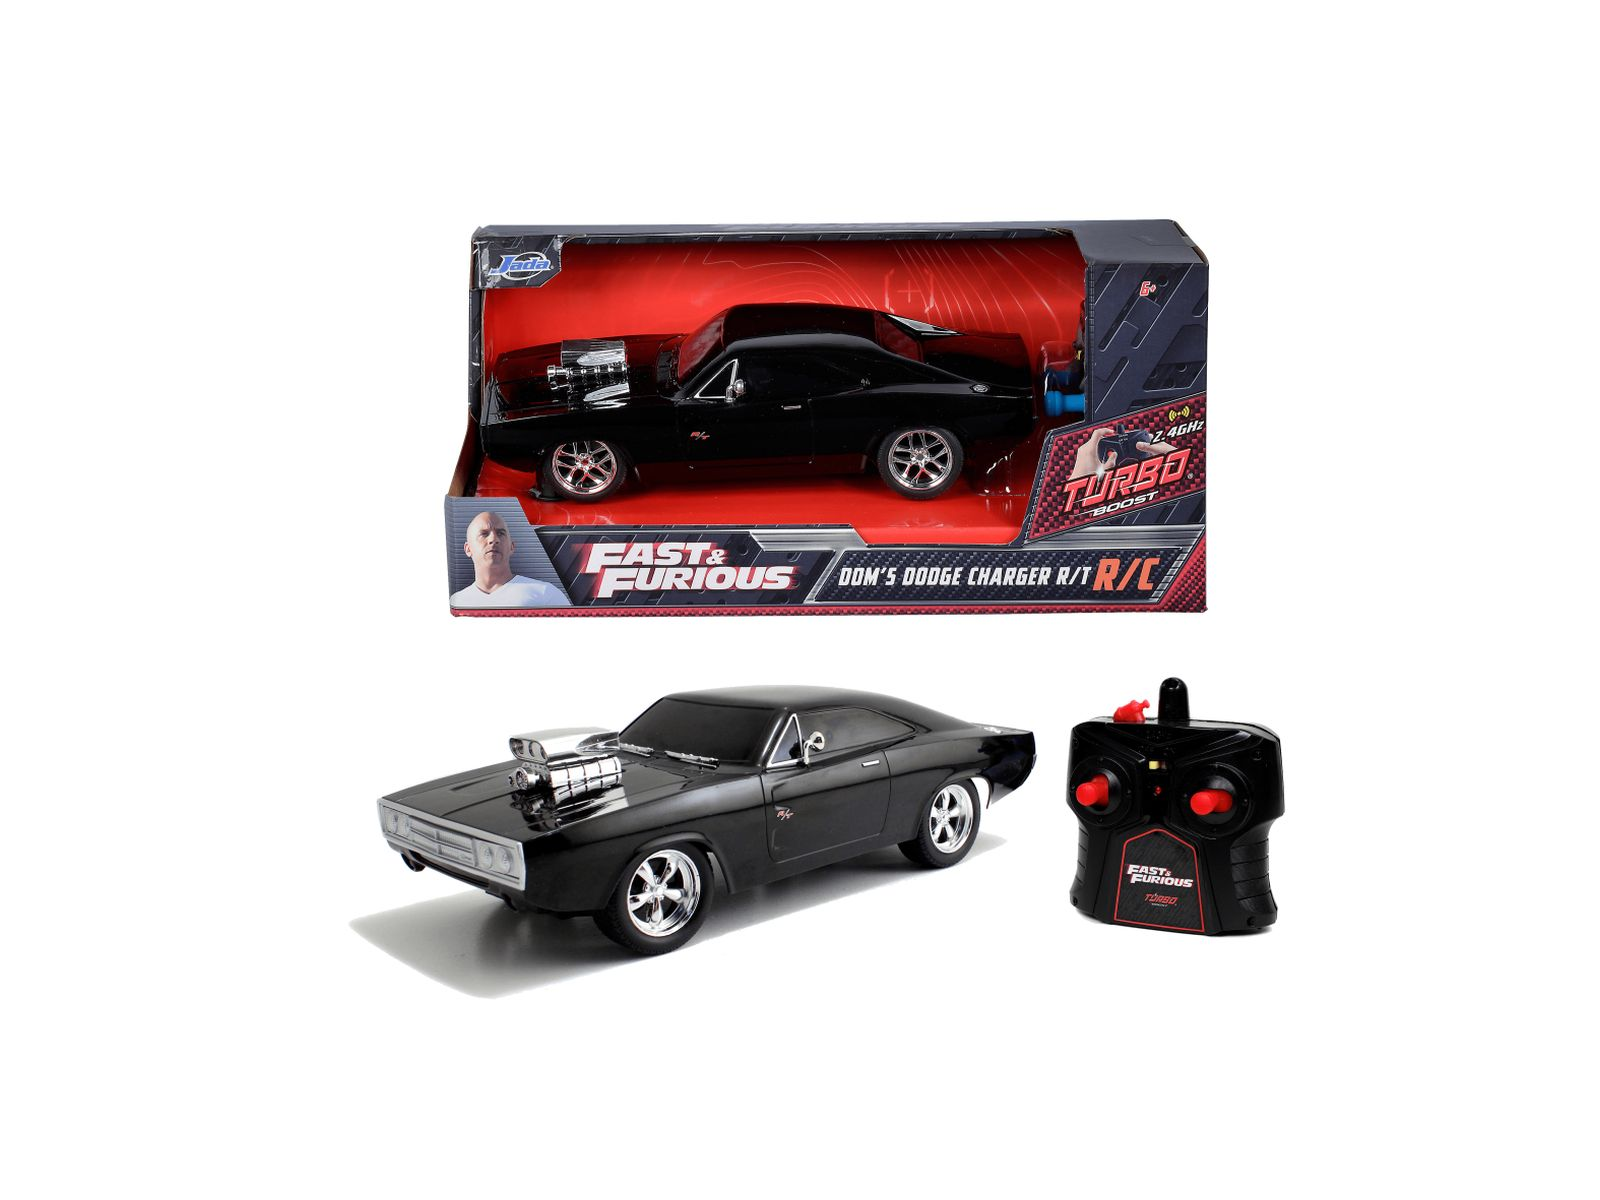 Fast&furious rc dodge charger del 1970 in scala 1:24 - JADA